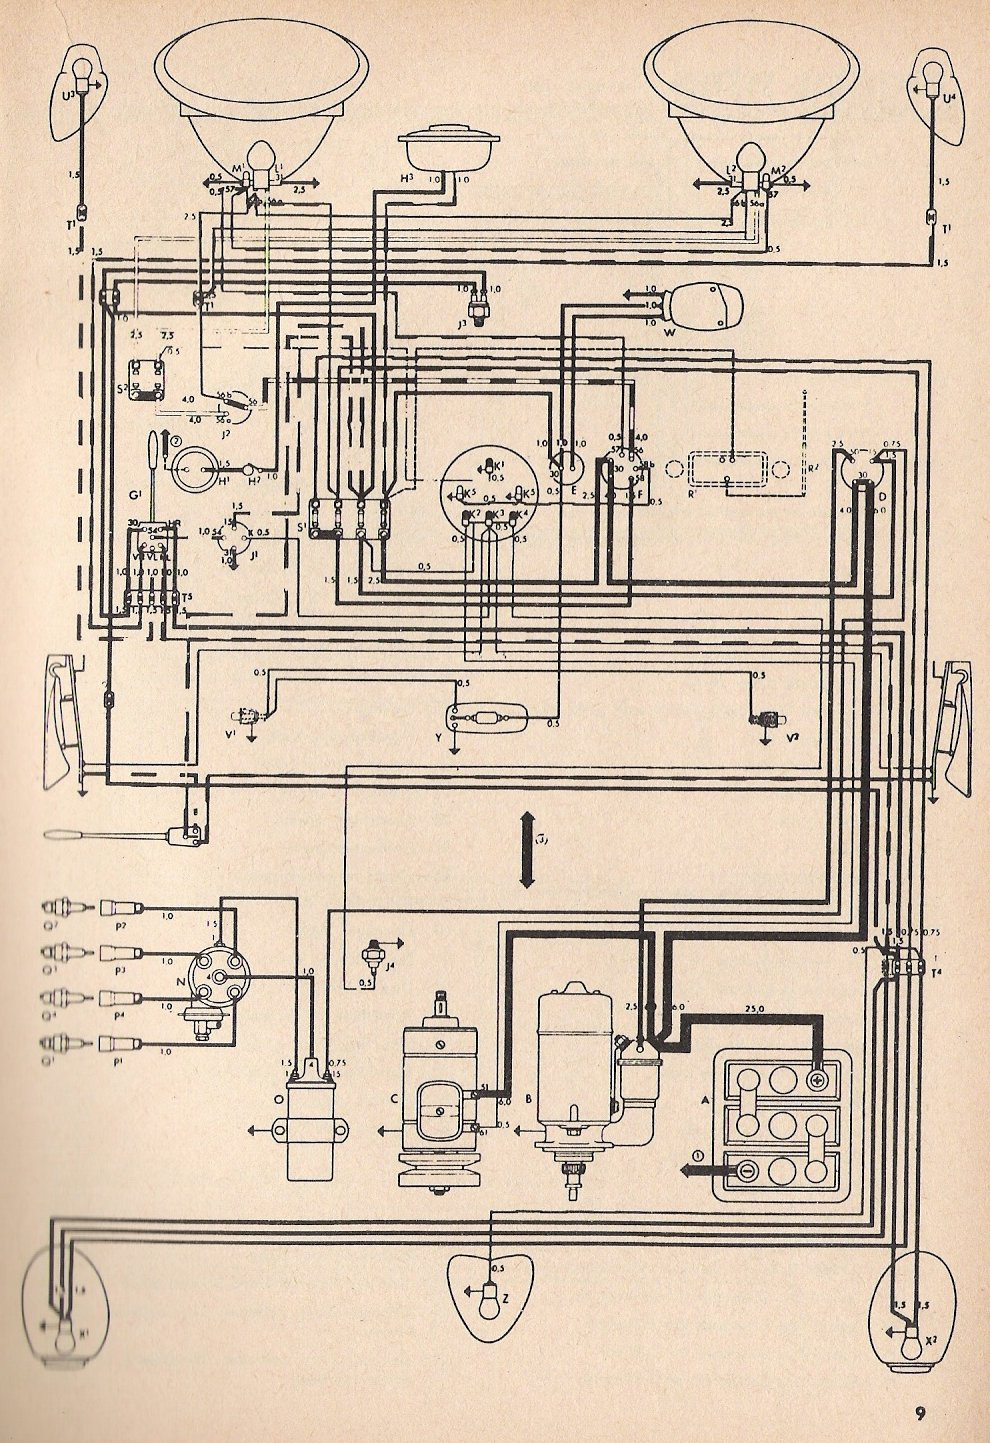 bug_toaug55 69 vw bug wiring diagram 1970 vw beetle wiring \u2022 wiring diagrams Rear Defroster Symbol at webbmarketing.co